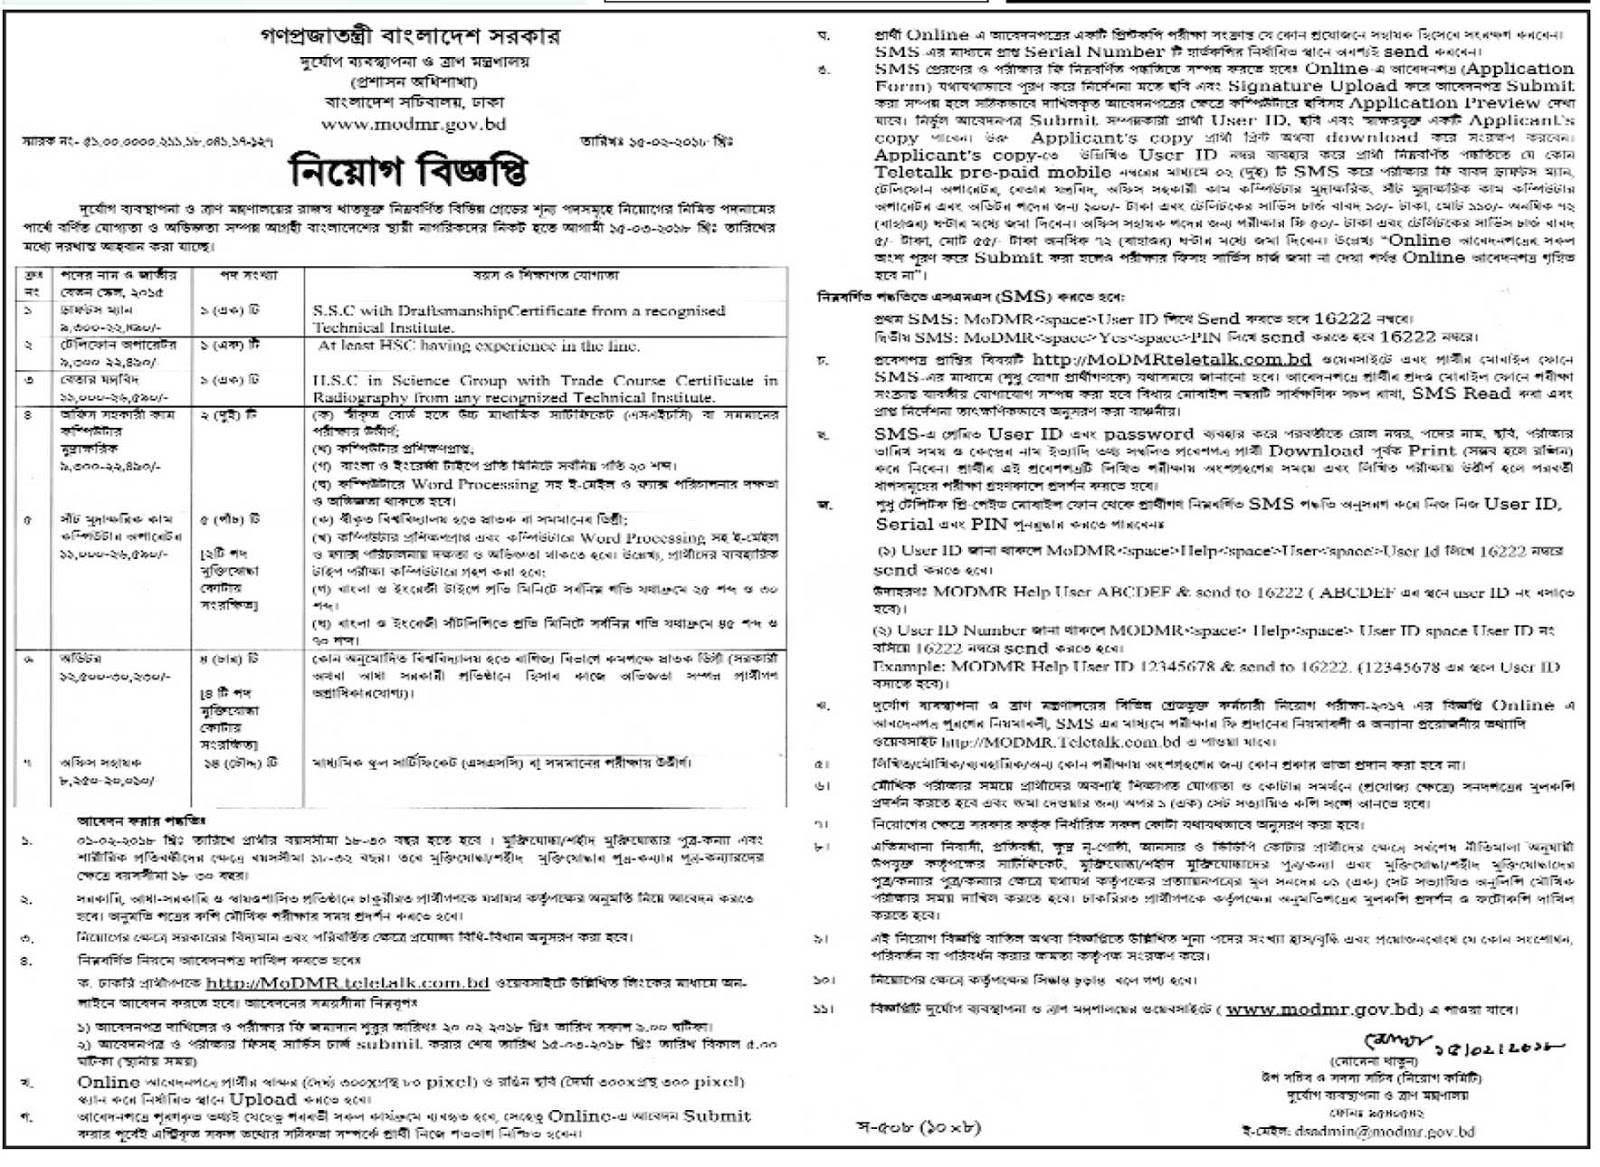 MODMR - Ministry of Disaster Management and Relief Recruitment Circular 2018